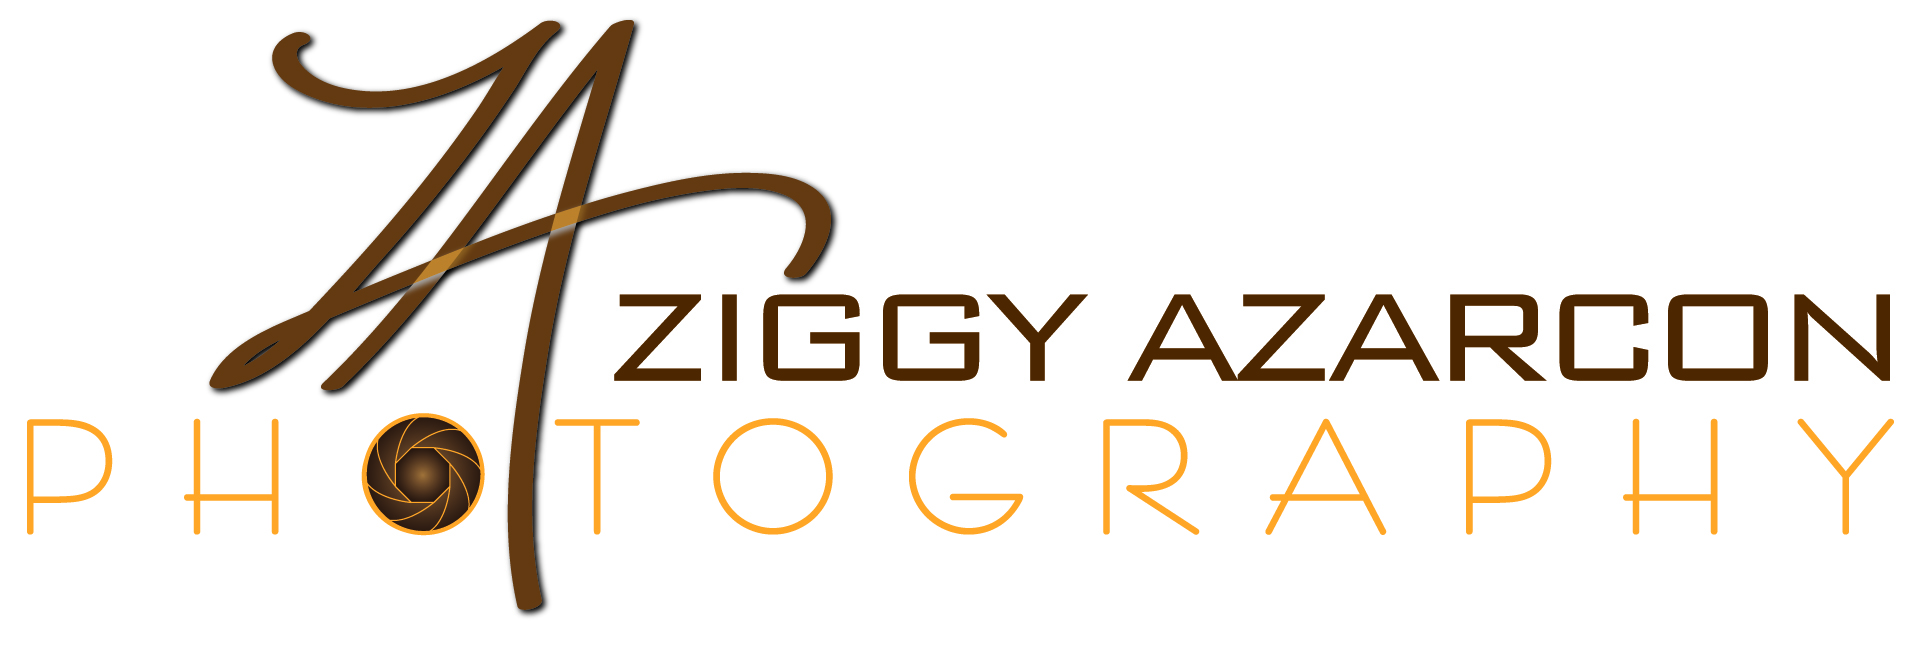 Ziggy Azarcon Photography